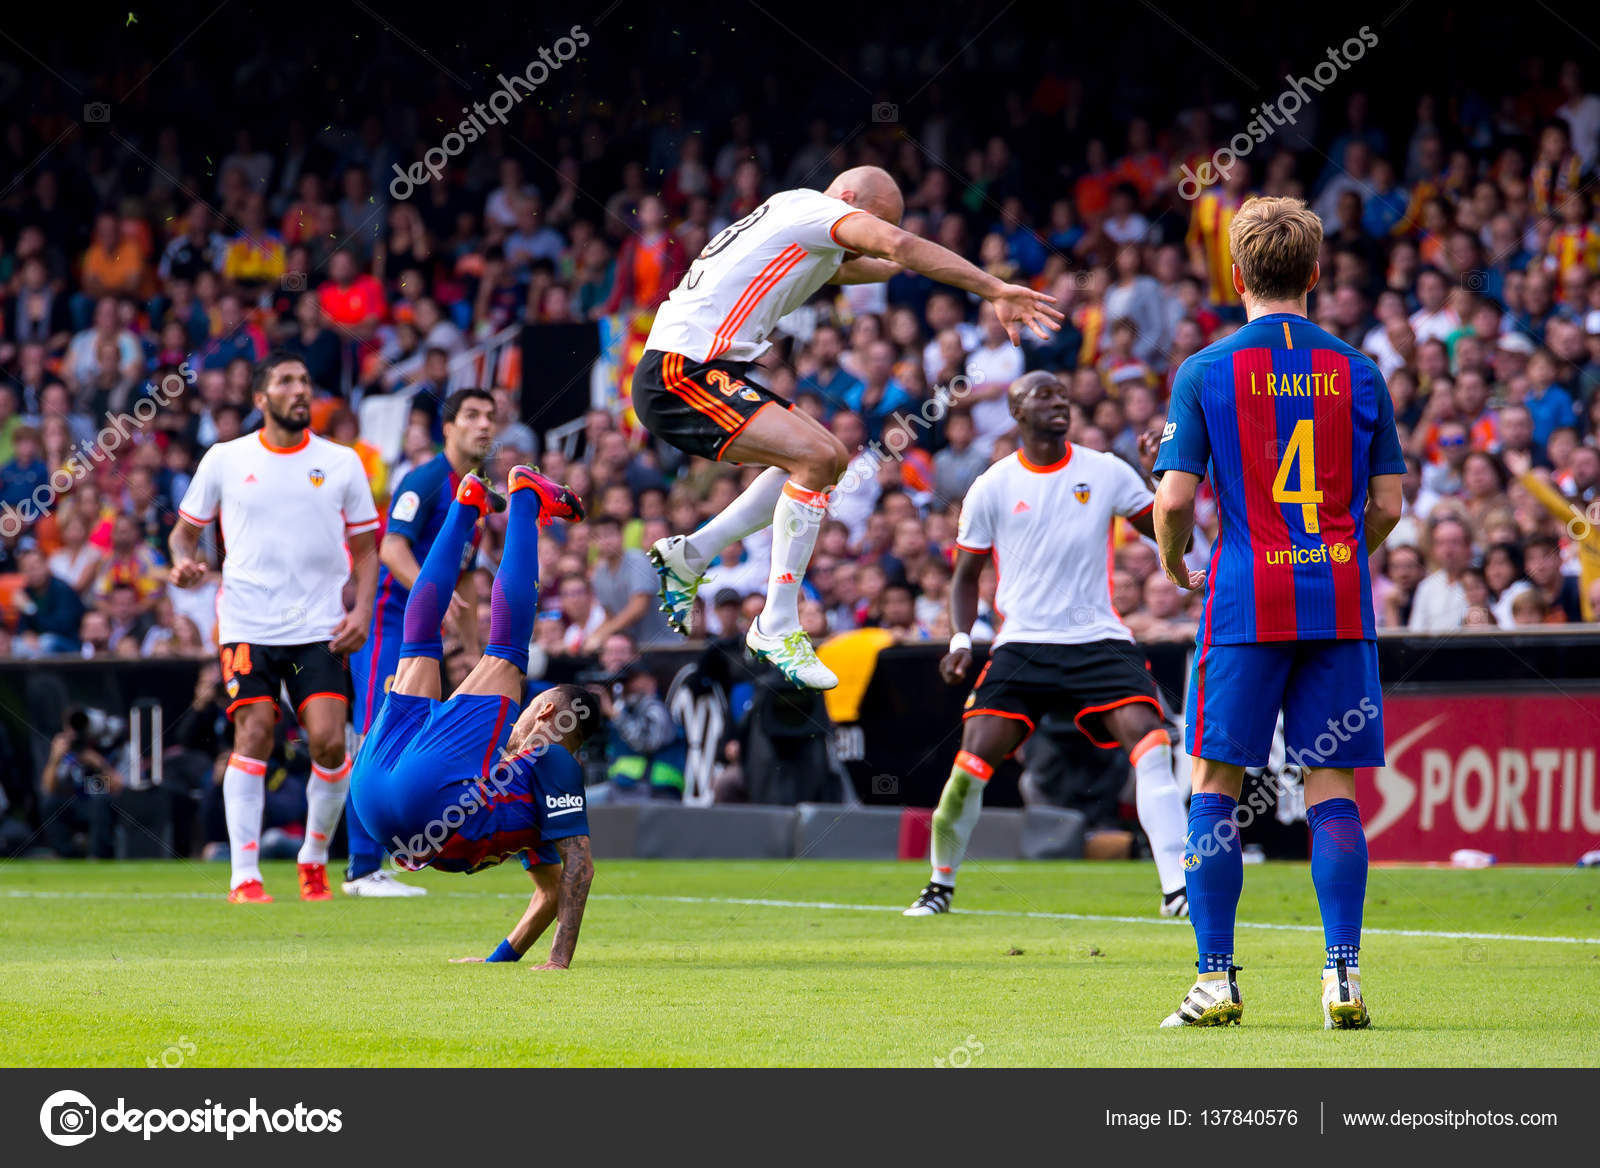 wallpapers bicycle kick bicycle kick by neymar at the la liga stock editorial photo c chbm89 137840576